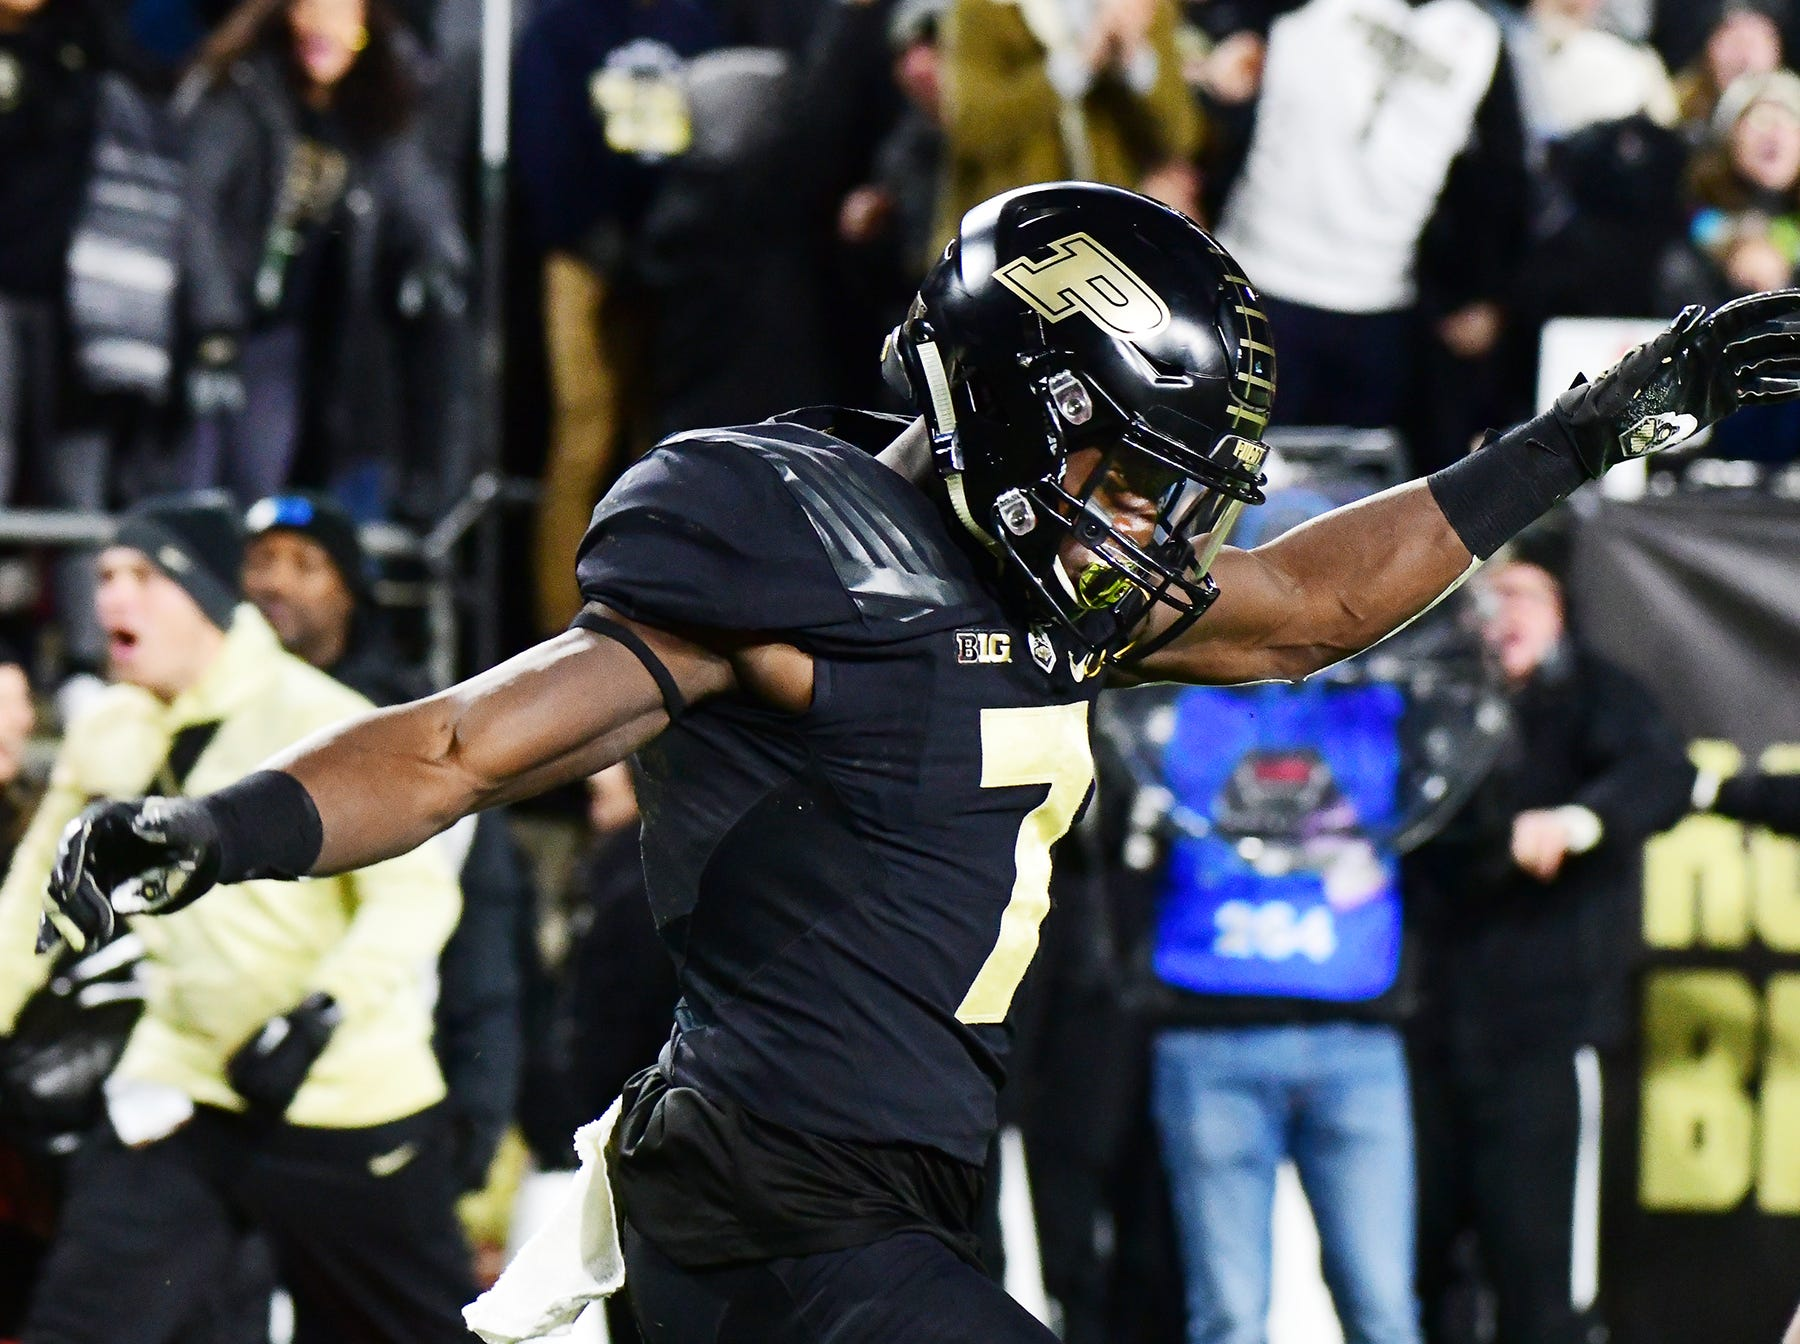 Isaac Zico of Purdue celebrates after his touchdown reception in the first half against Ohio State Saturday, October 20, 2018, at Ross-Ade Stadium. Purdue upset No. 2 ranked Ohio State 49-20.